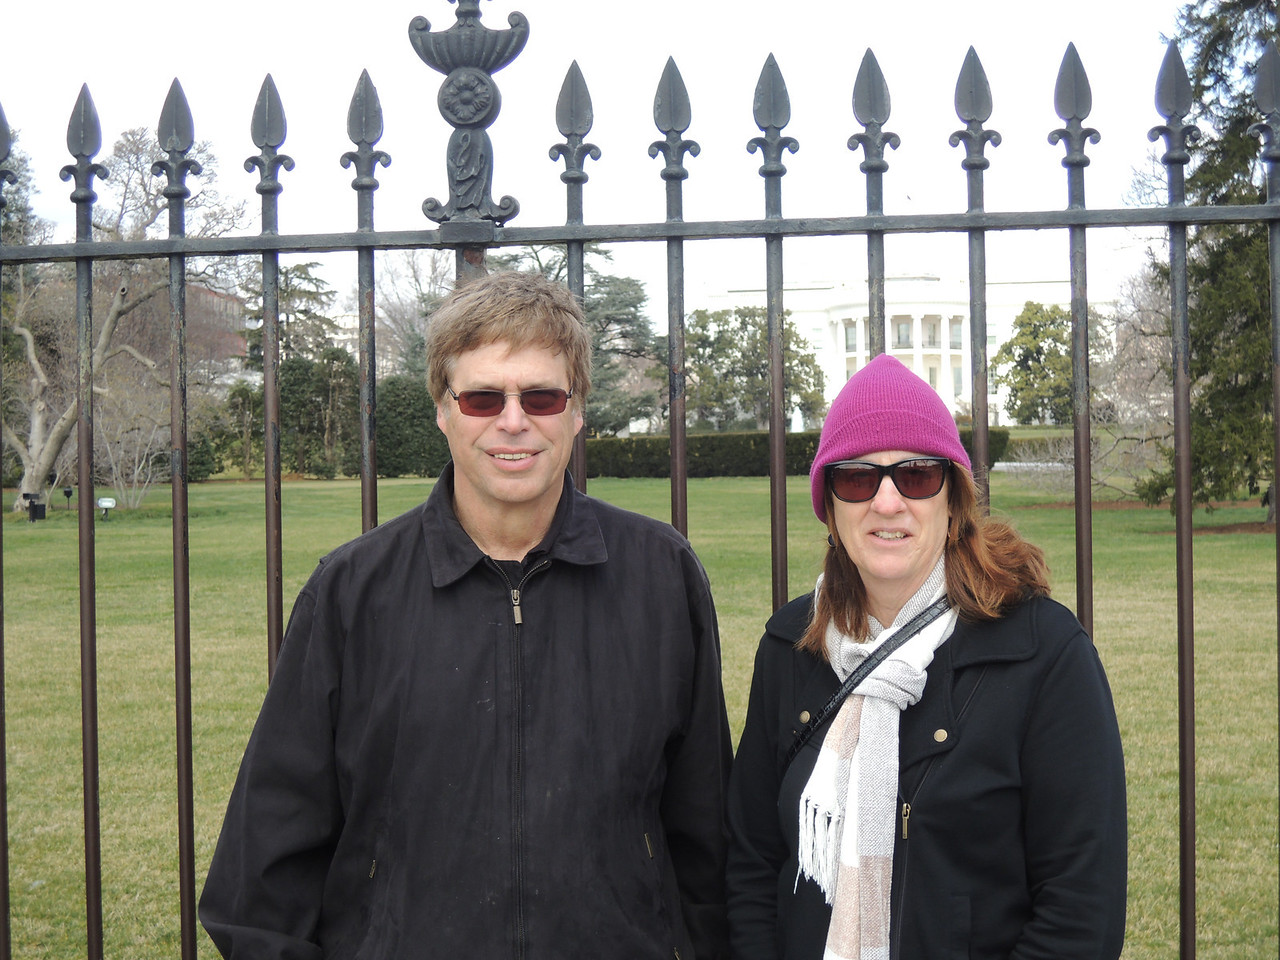 Jim and Margie outside the White House.